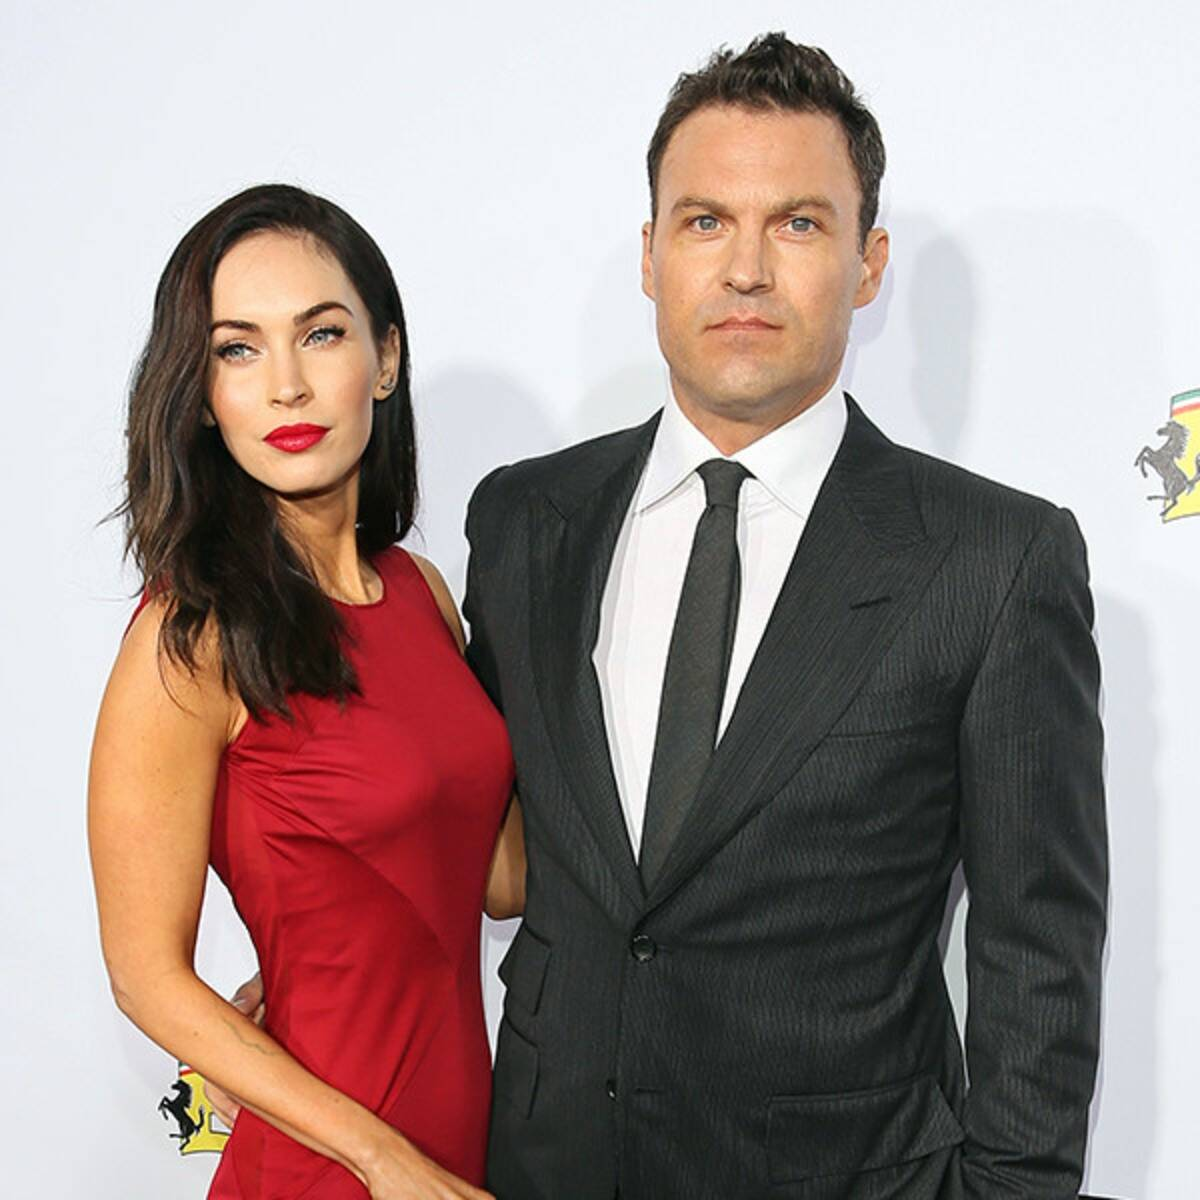 brian-austin-green-requests-joint-custody-of-his-sons-with-ex-wife-megan-fox-in-new-court-documents-details